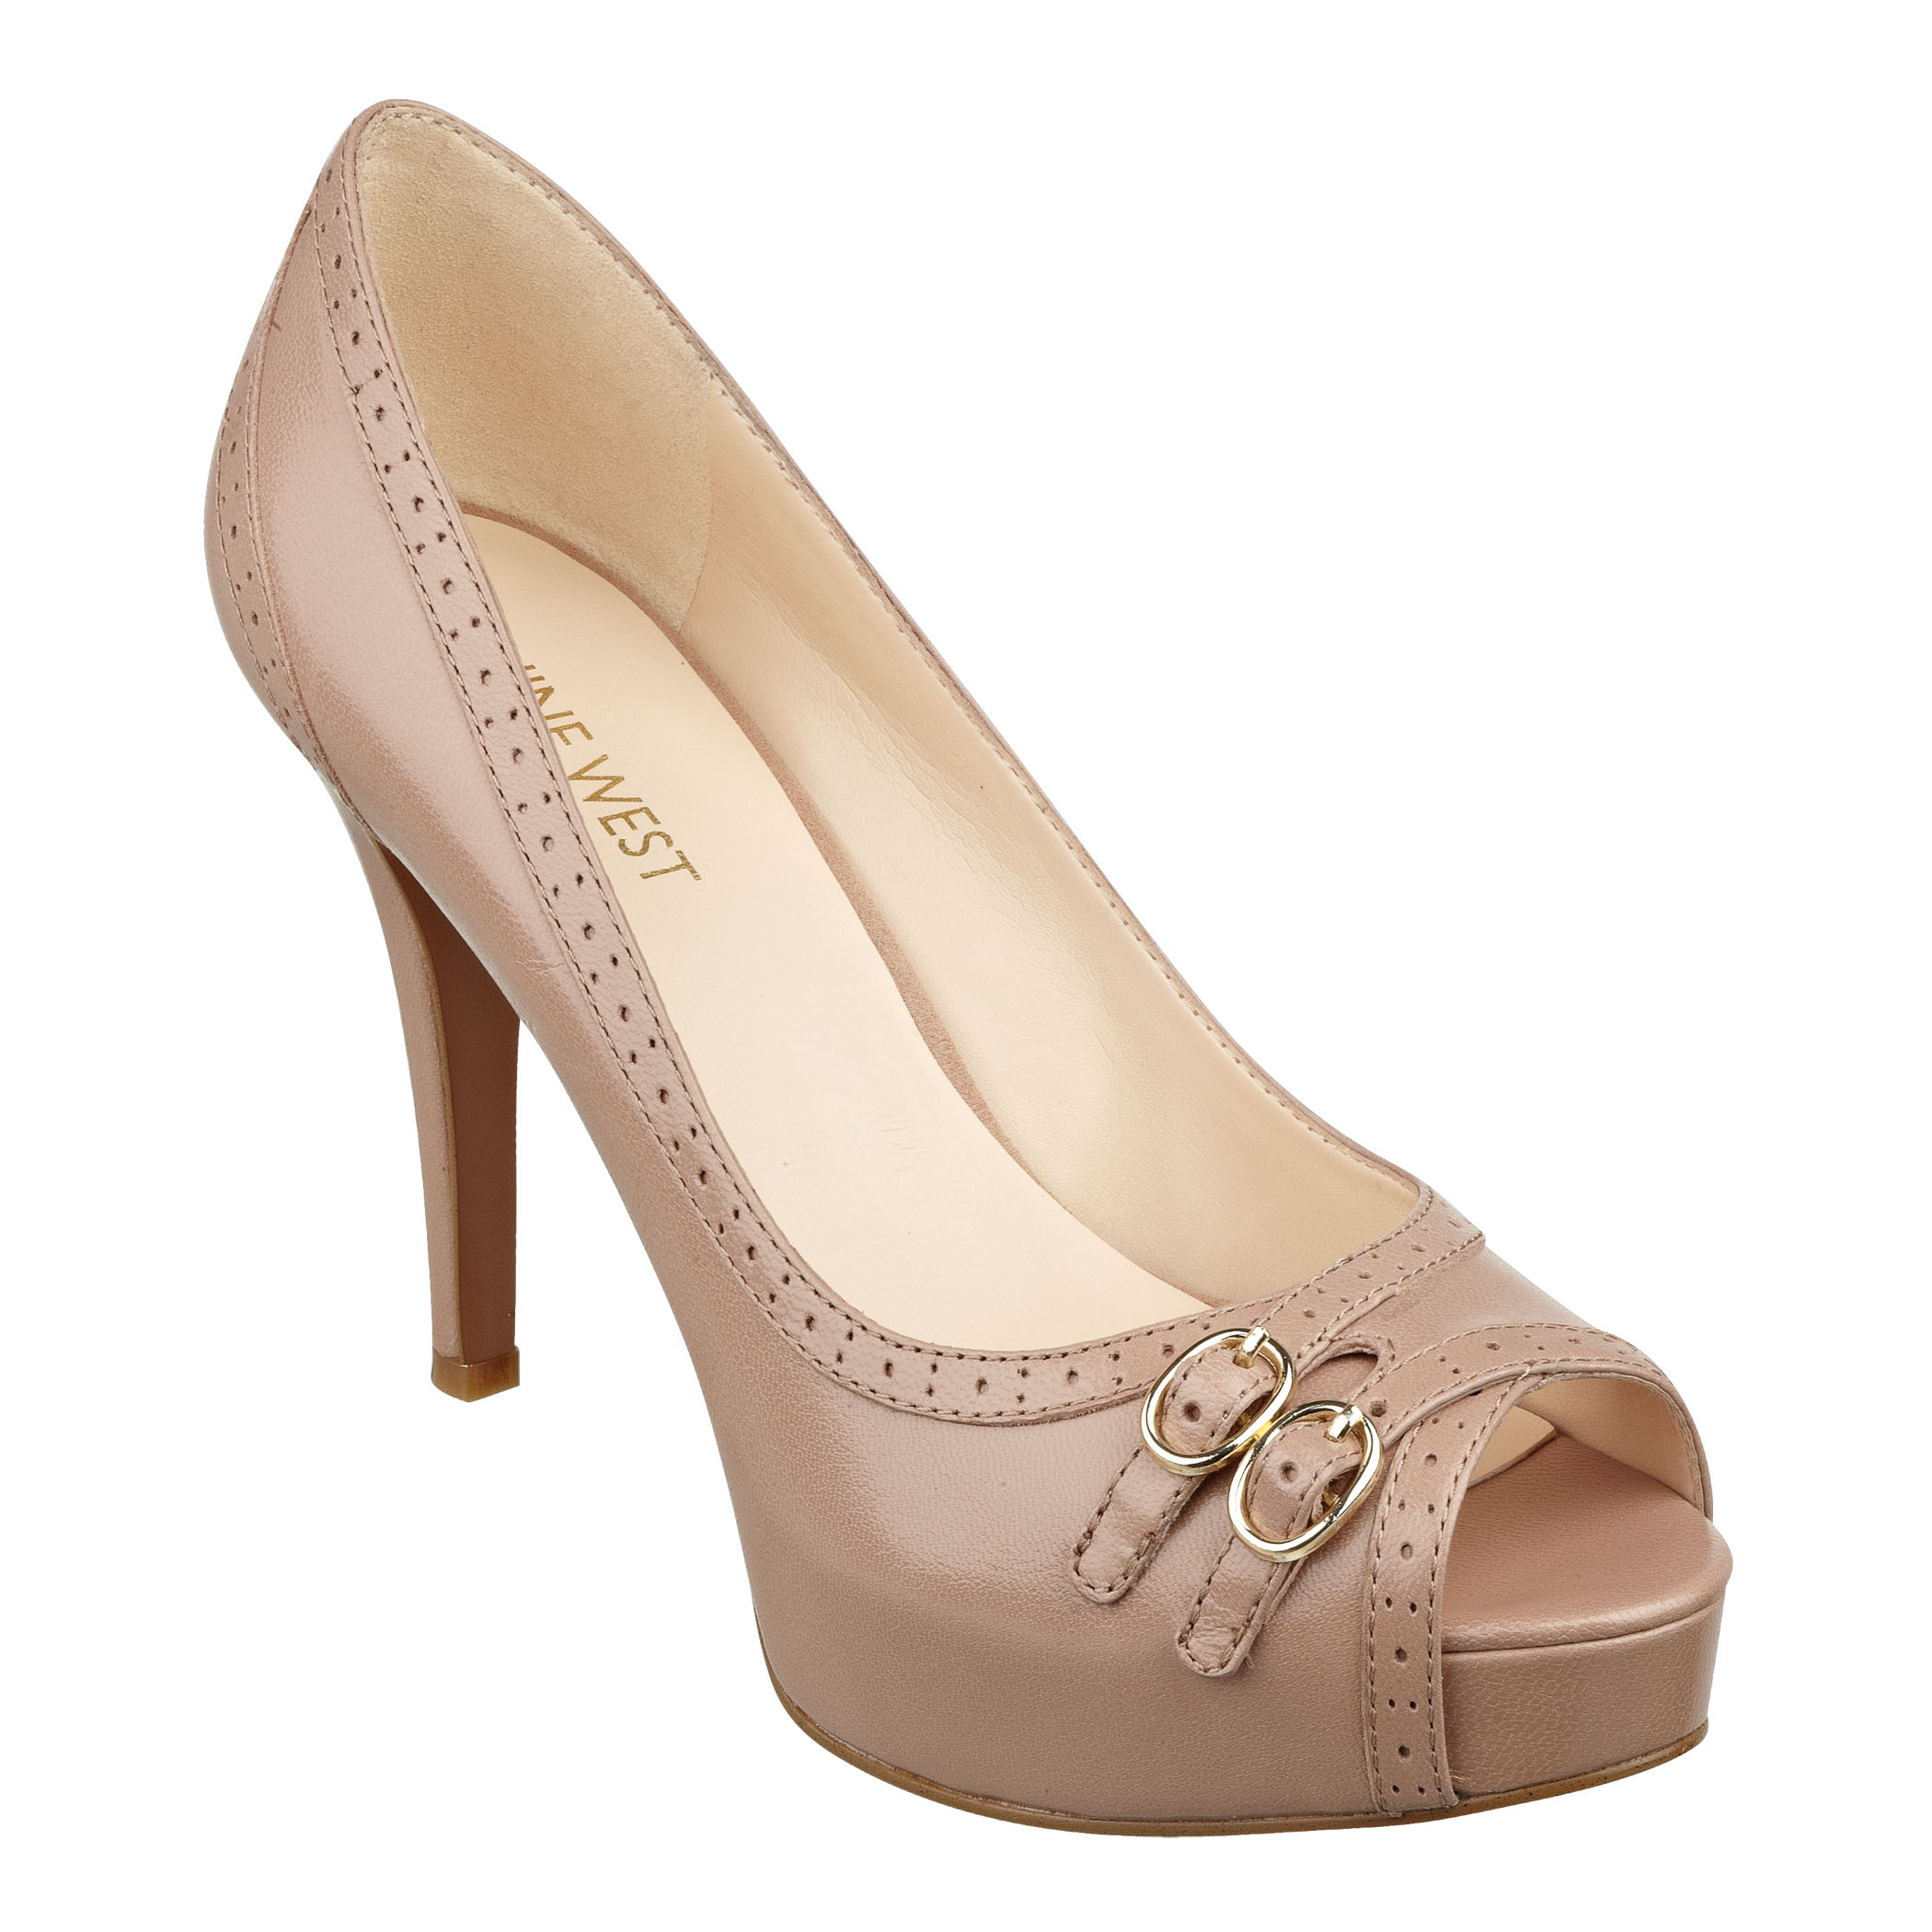 Latest Fashion of Stiletto & Heels Collection for women by Nine West(9)